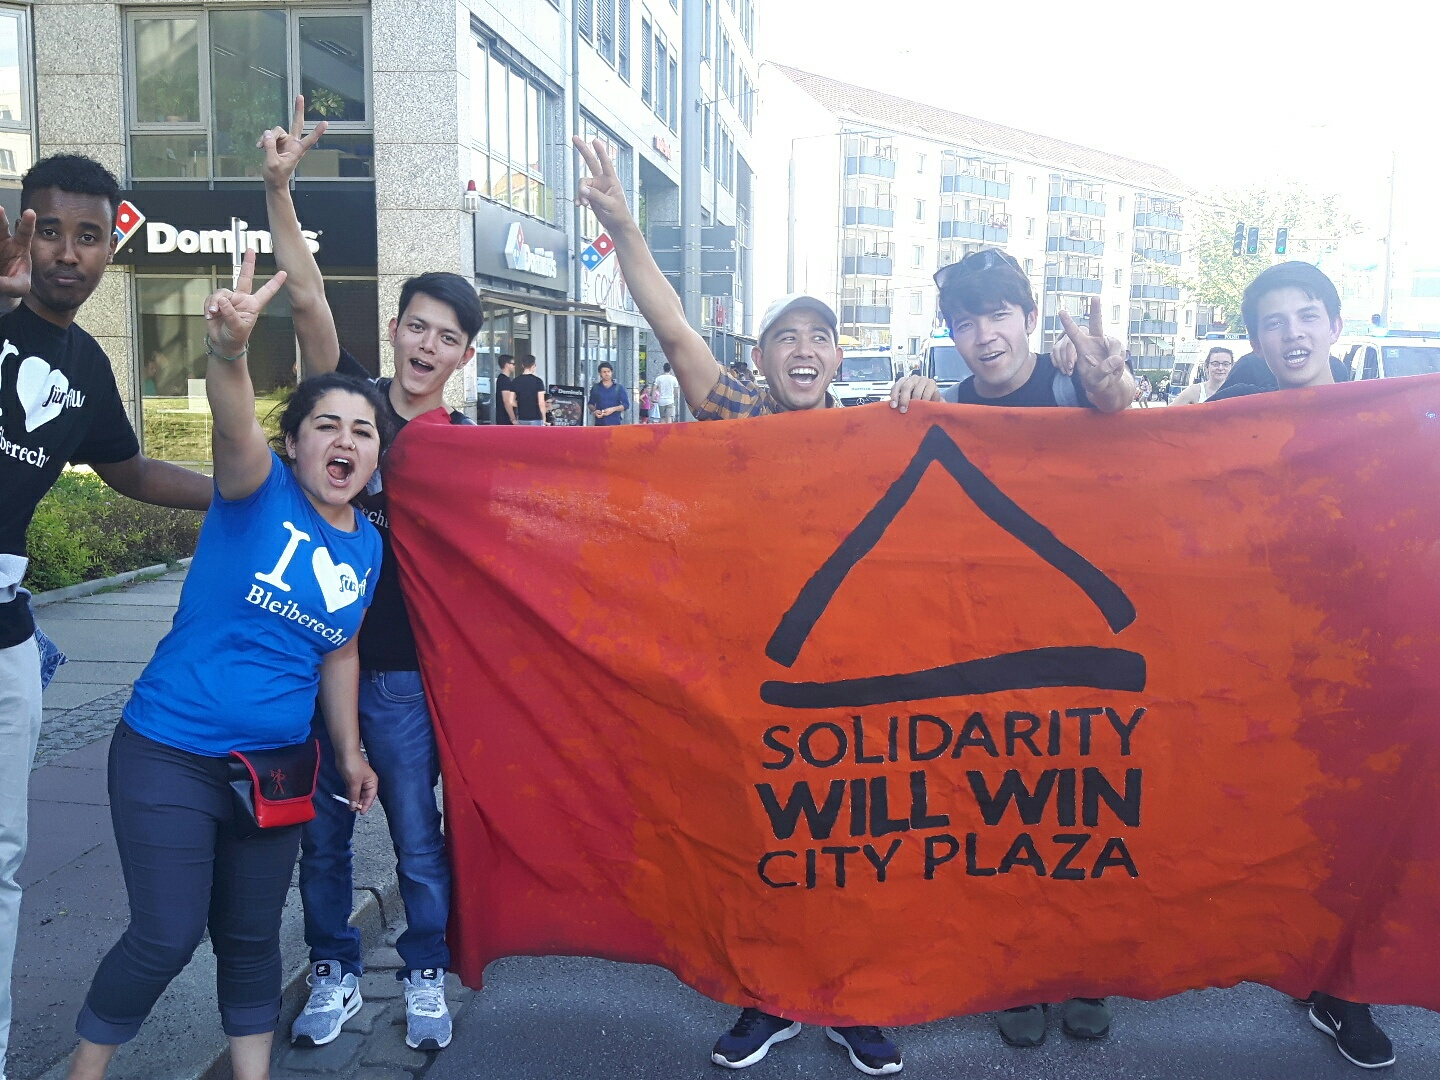 Solidarity will win!